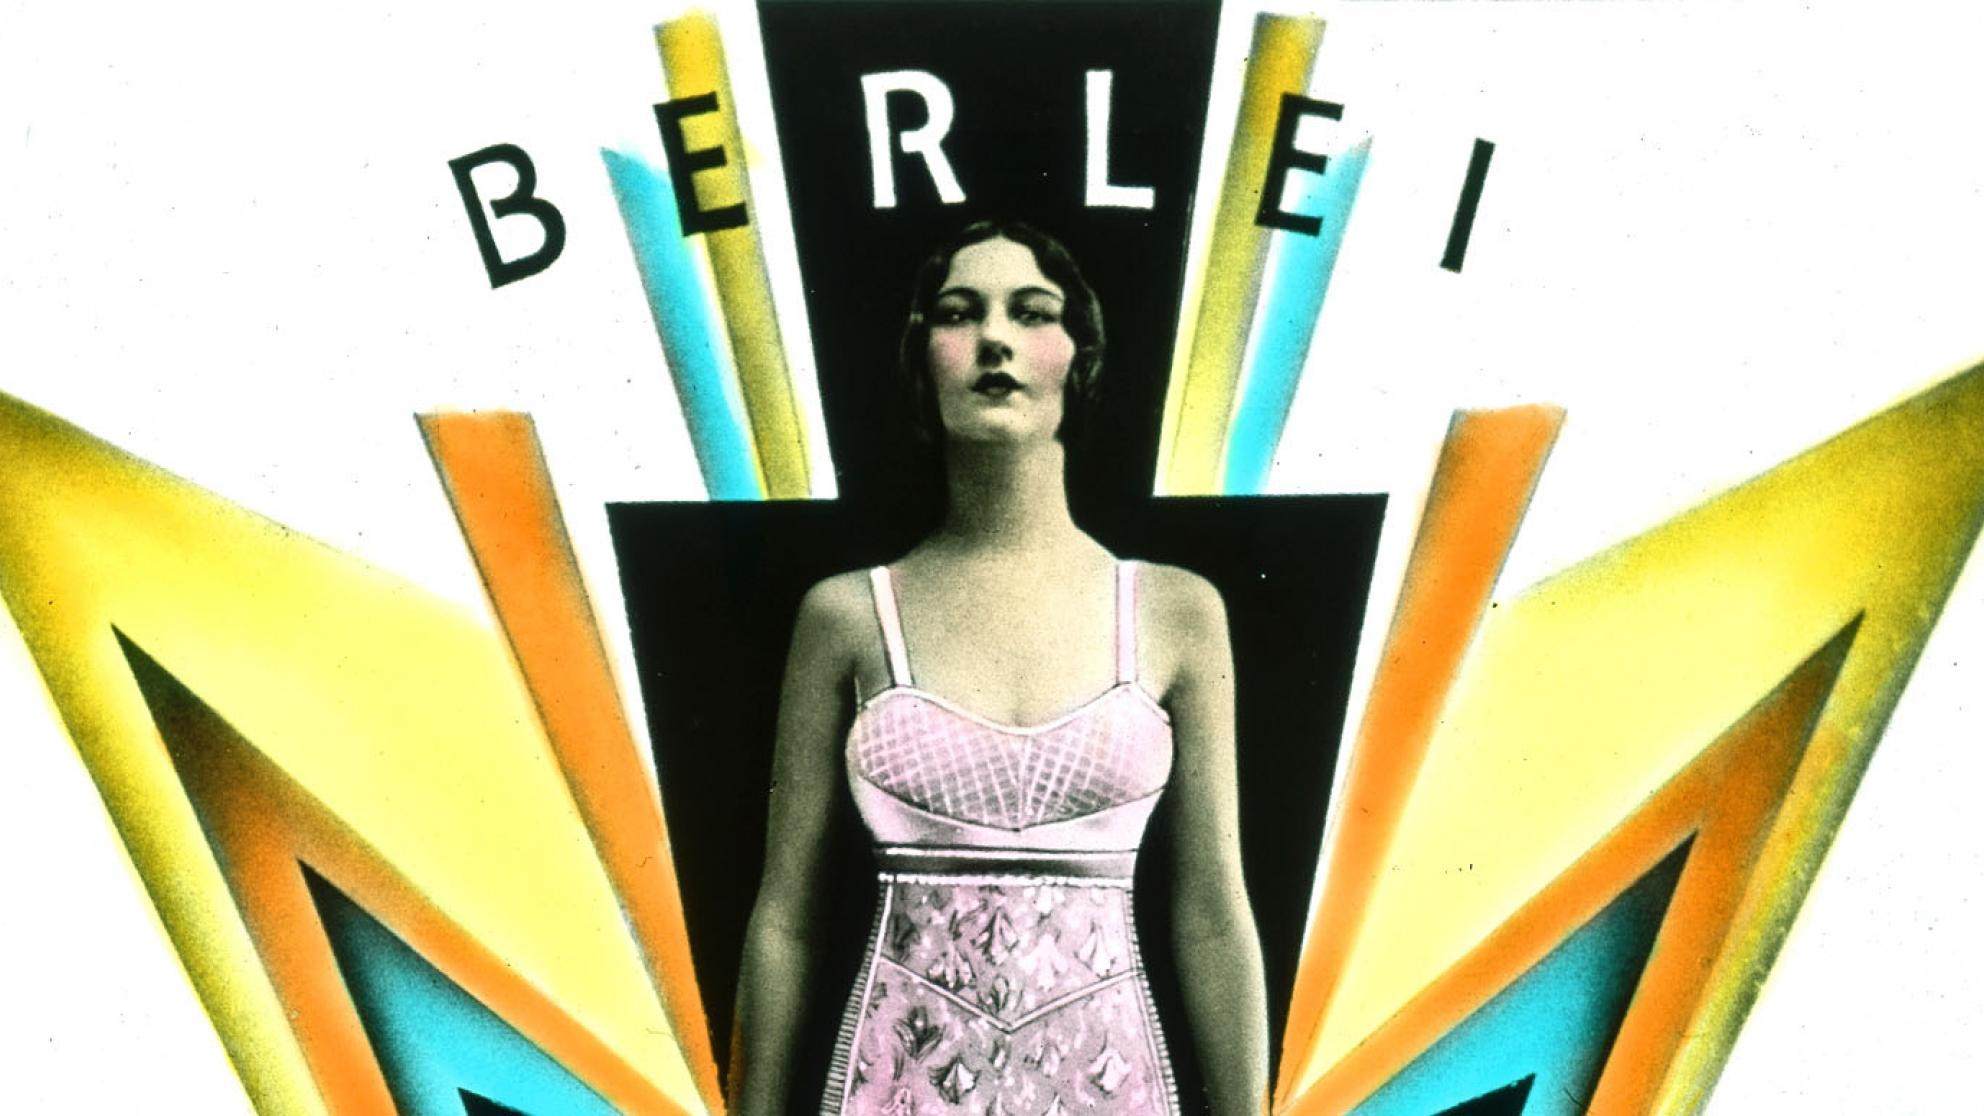 A woman wearing a pink foundation garment stands amidst art deco design elements suggesting power and lightening.